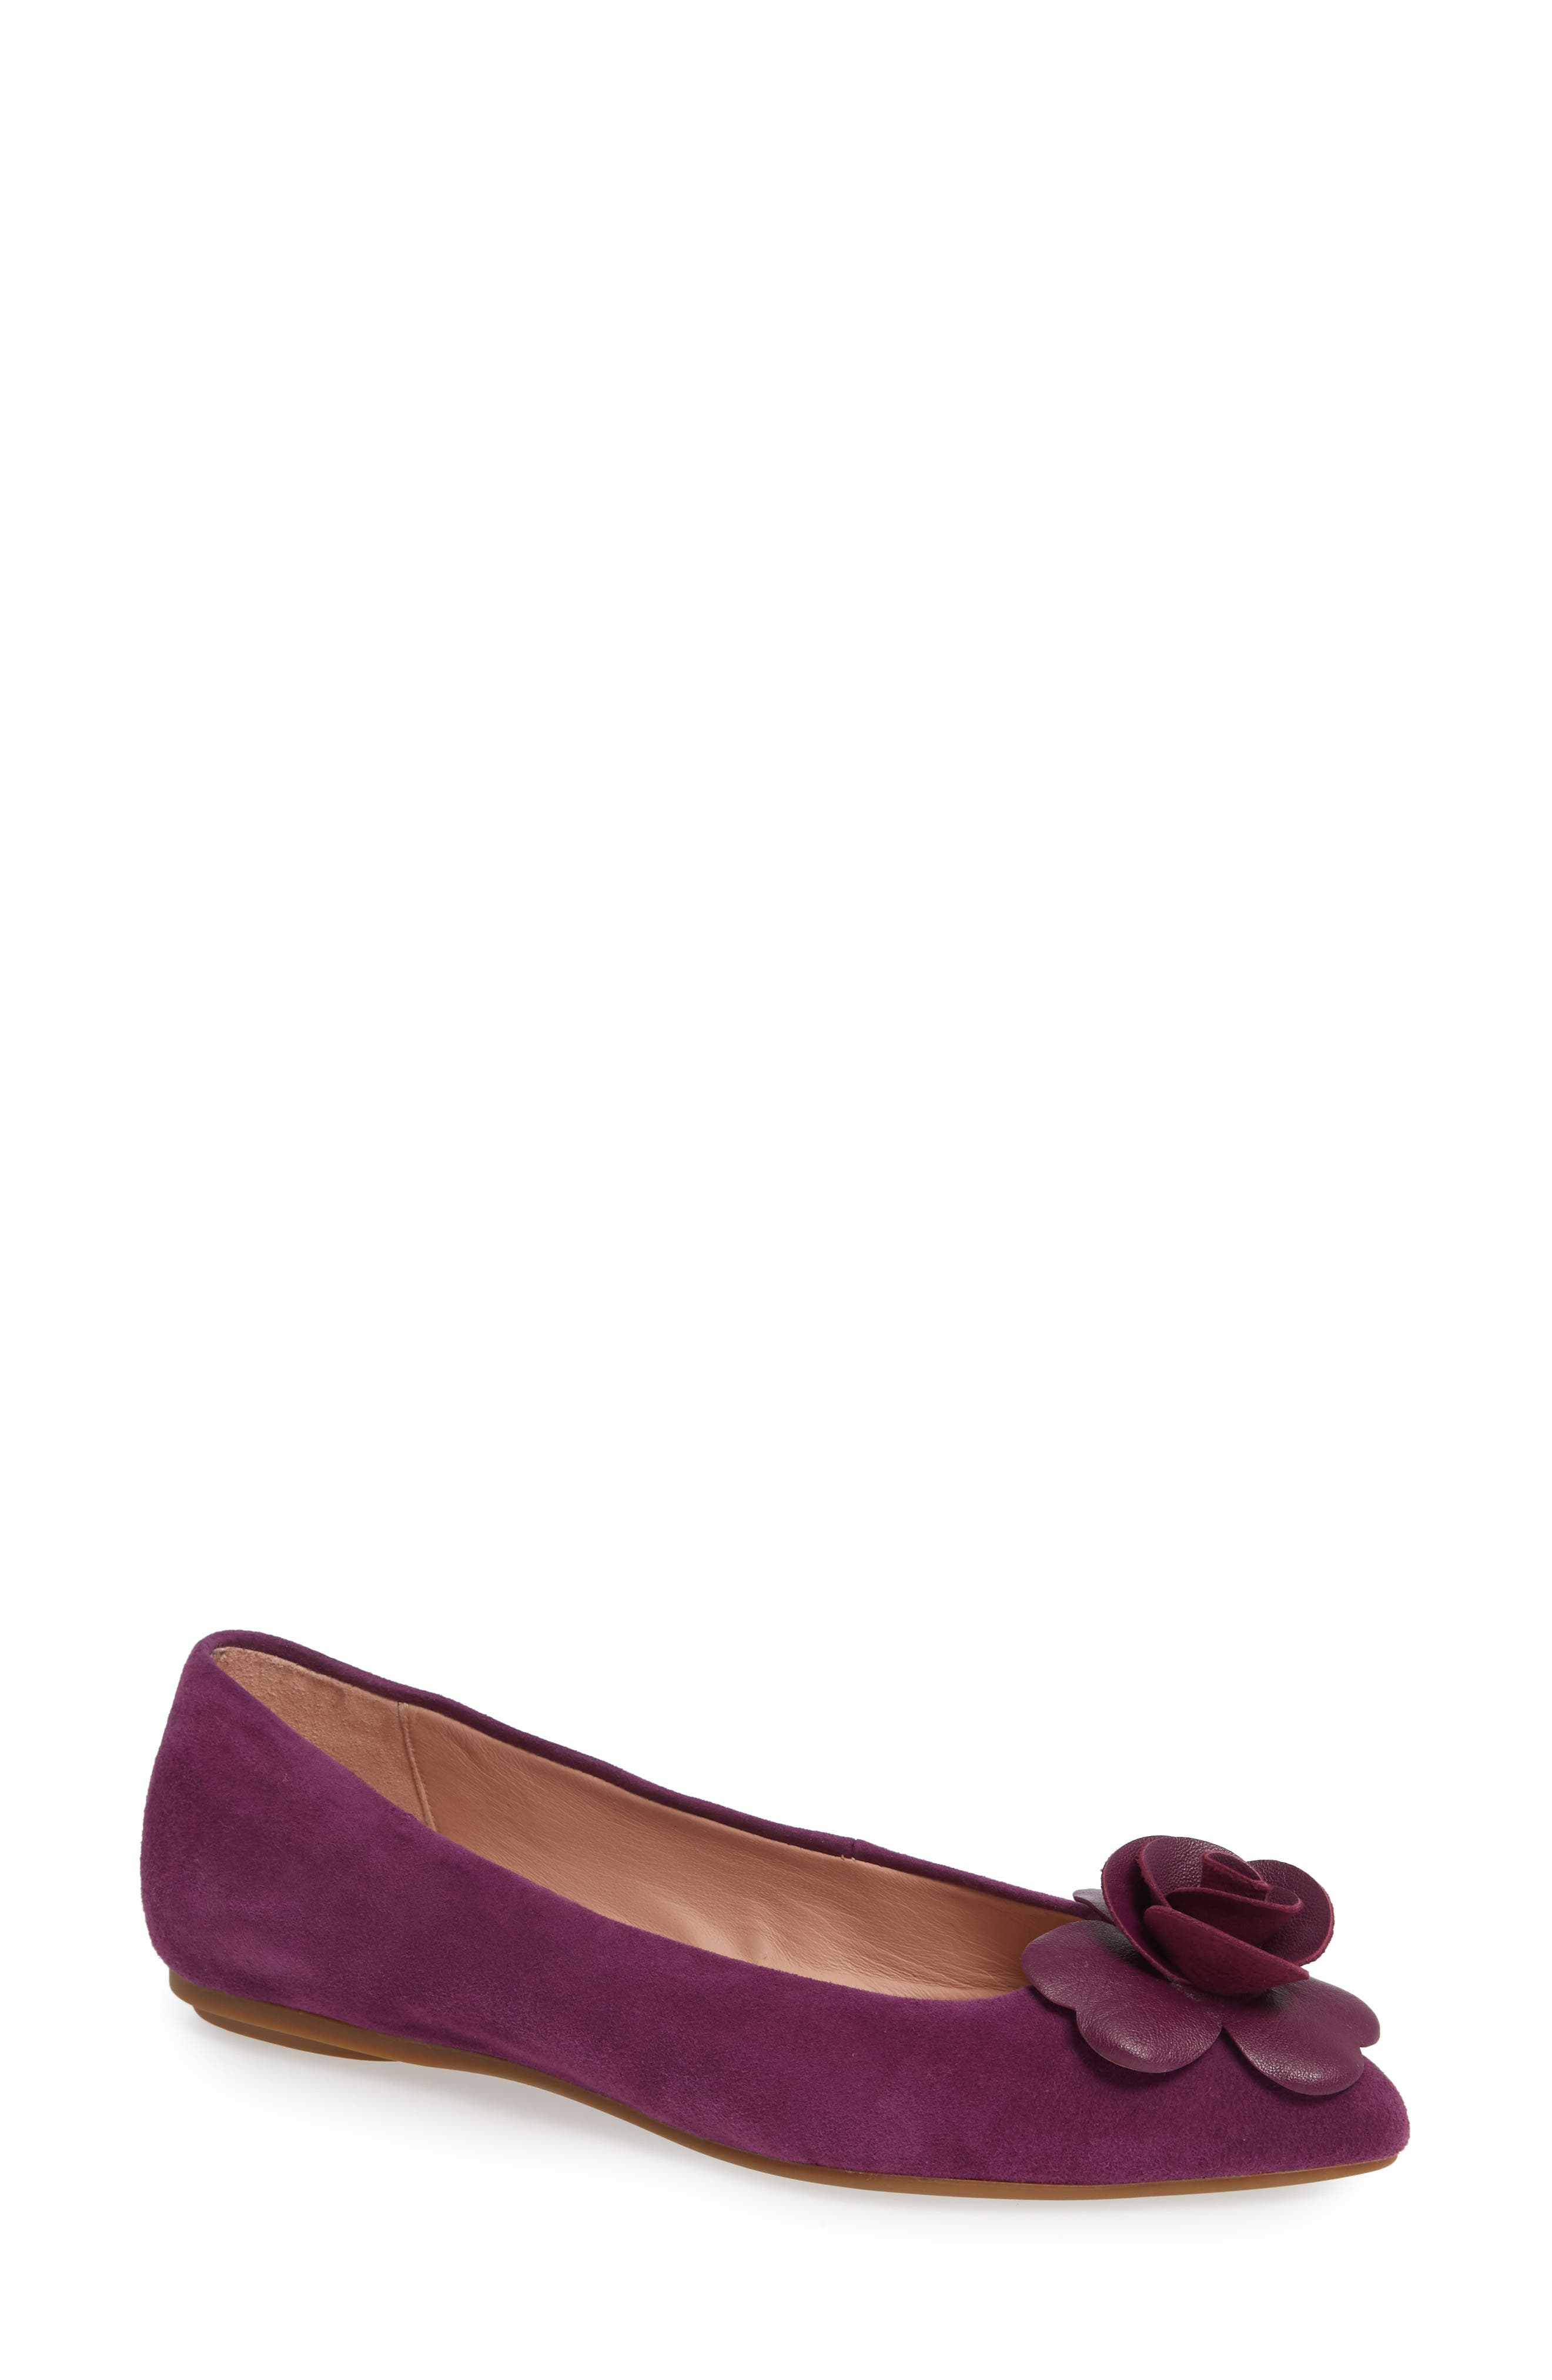 Taryn Rose Frida Rose Flat, Purple